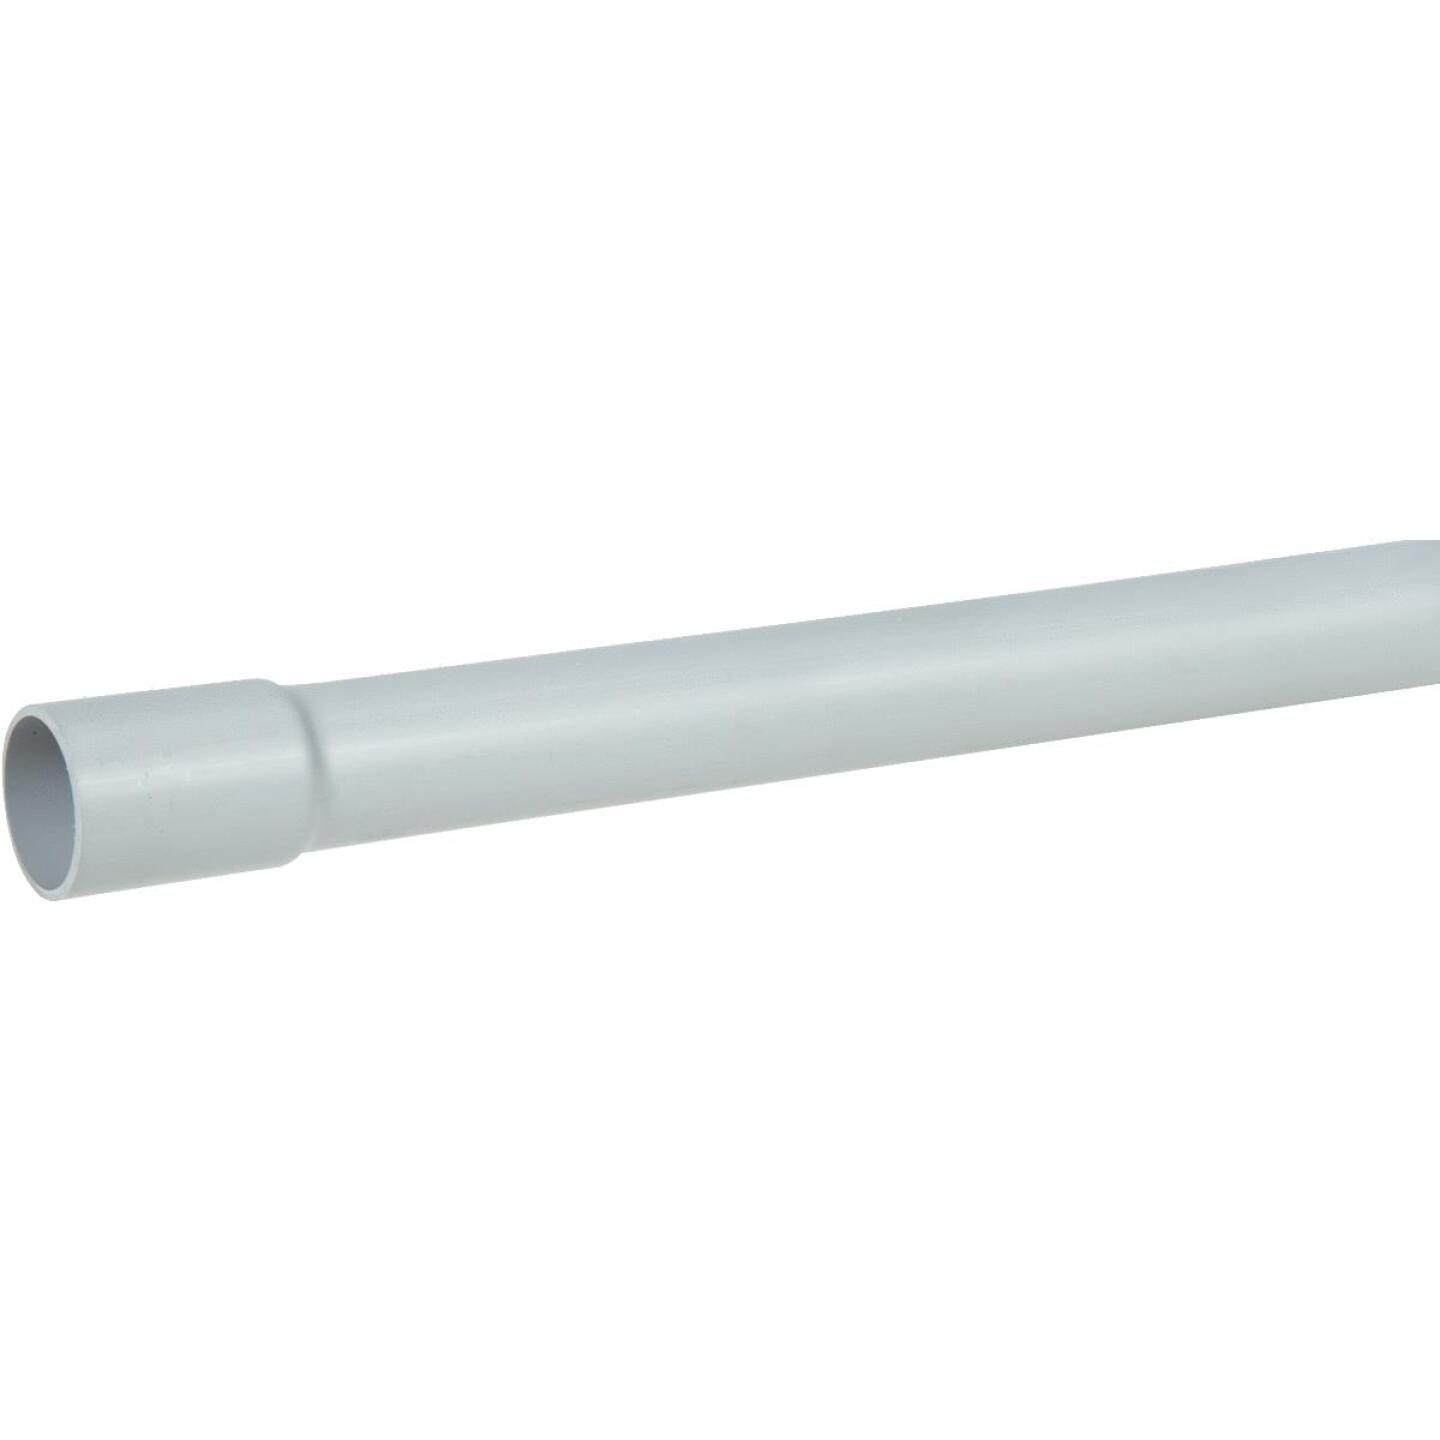 Allied 2-1/2 In. x 10 Ft. Schedule 80 PVC Conduit Image 1